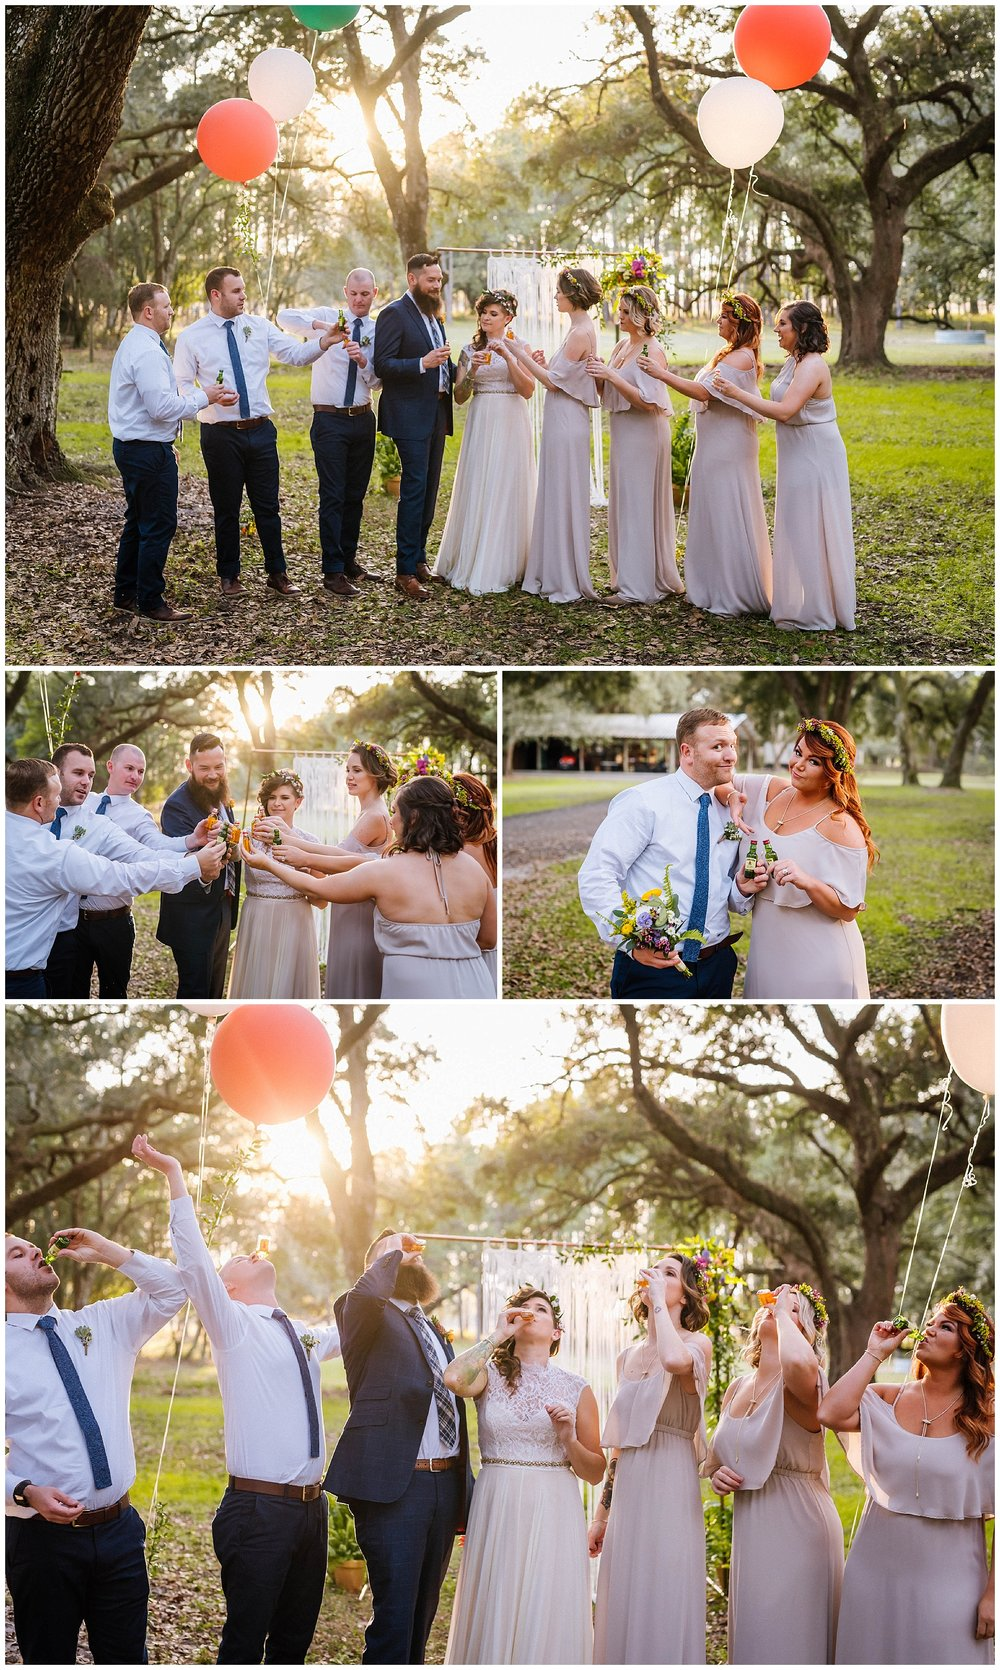 magical-outdoor-florida-wedding-smoke-bombs-flowers-crown-beard_0043.jpg